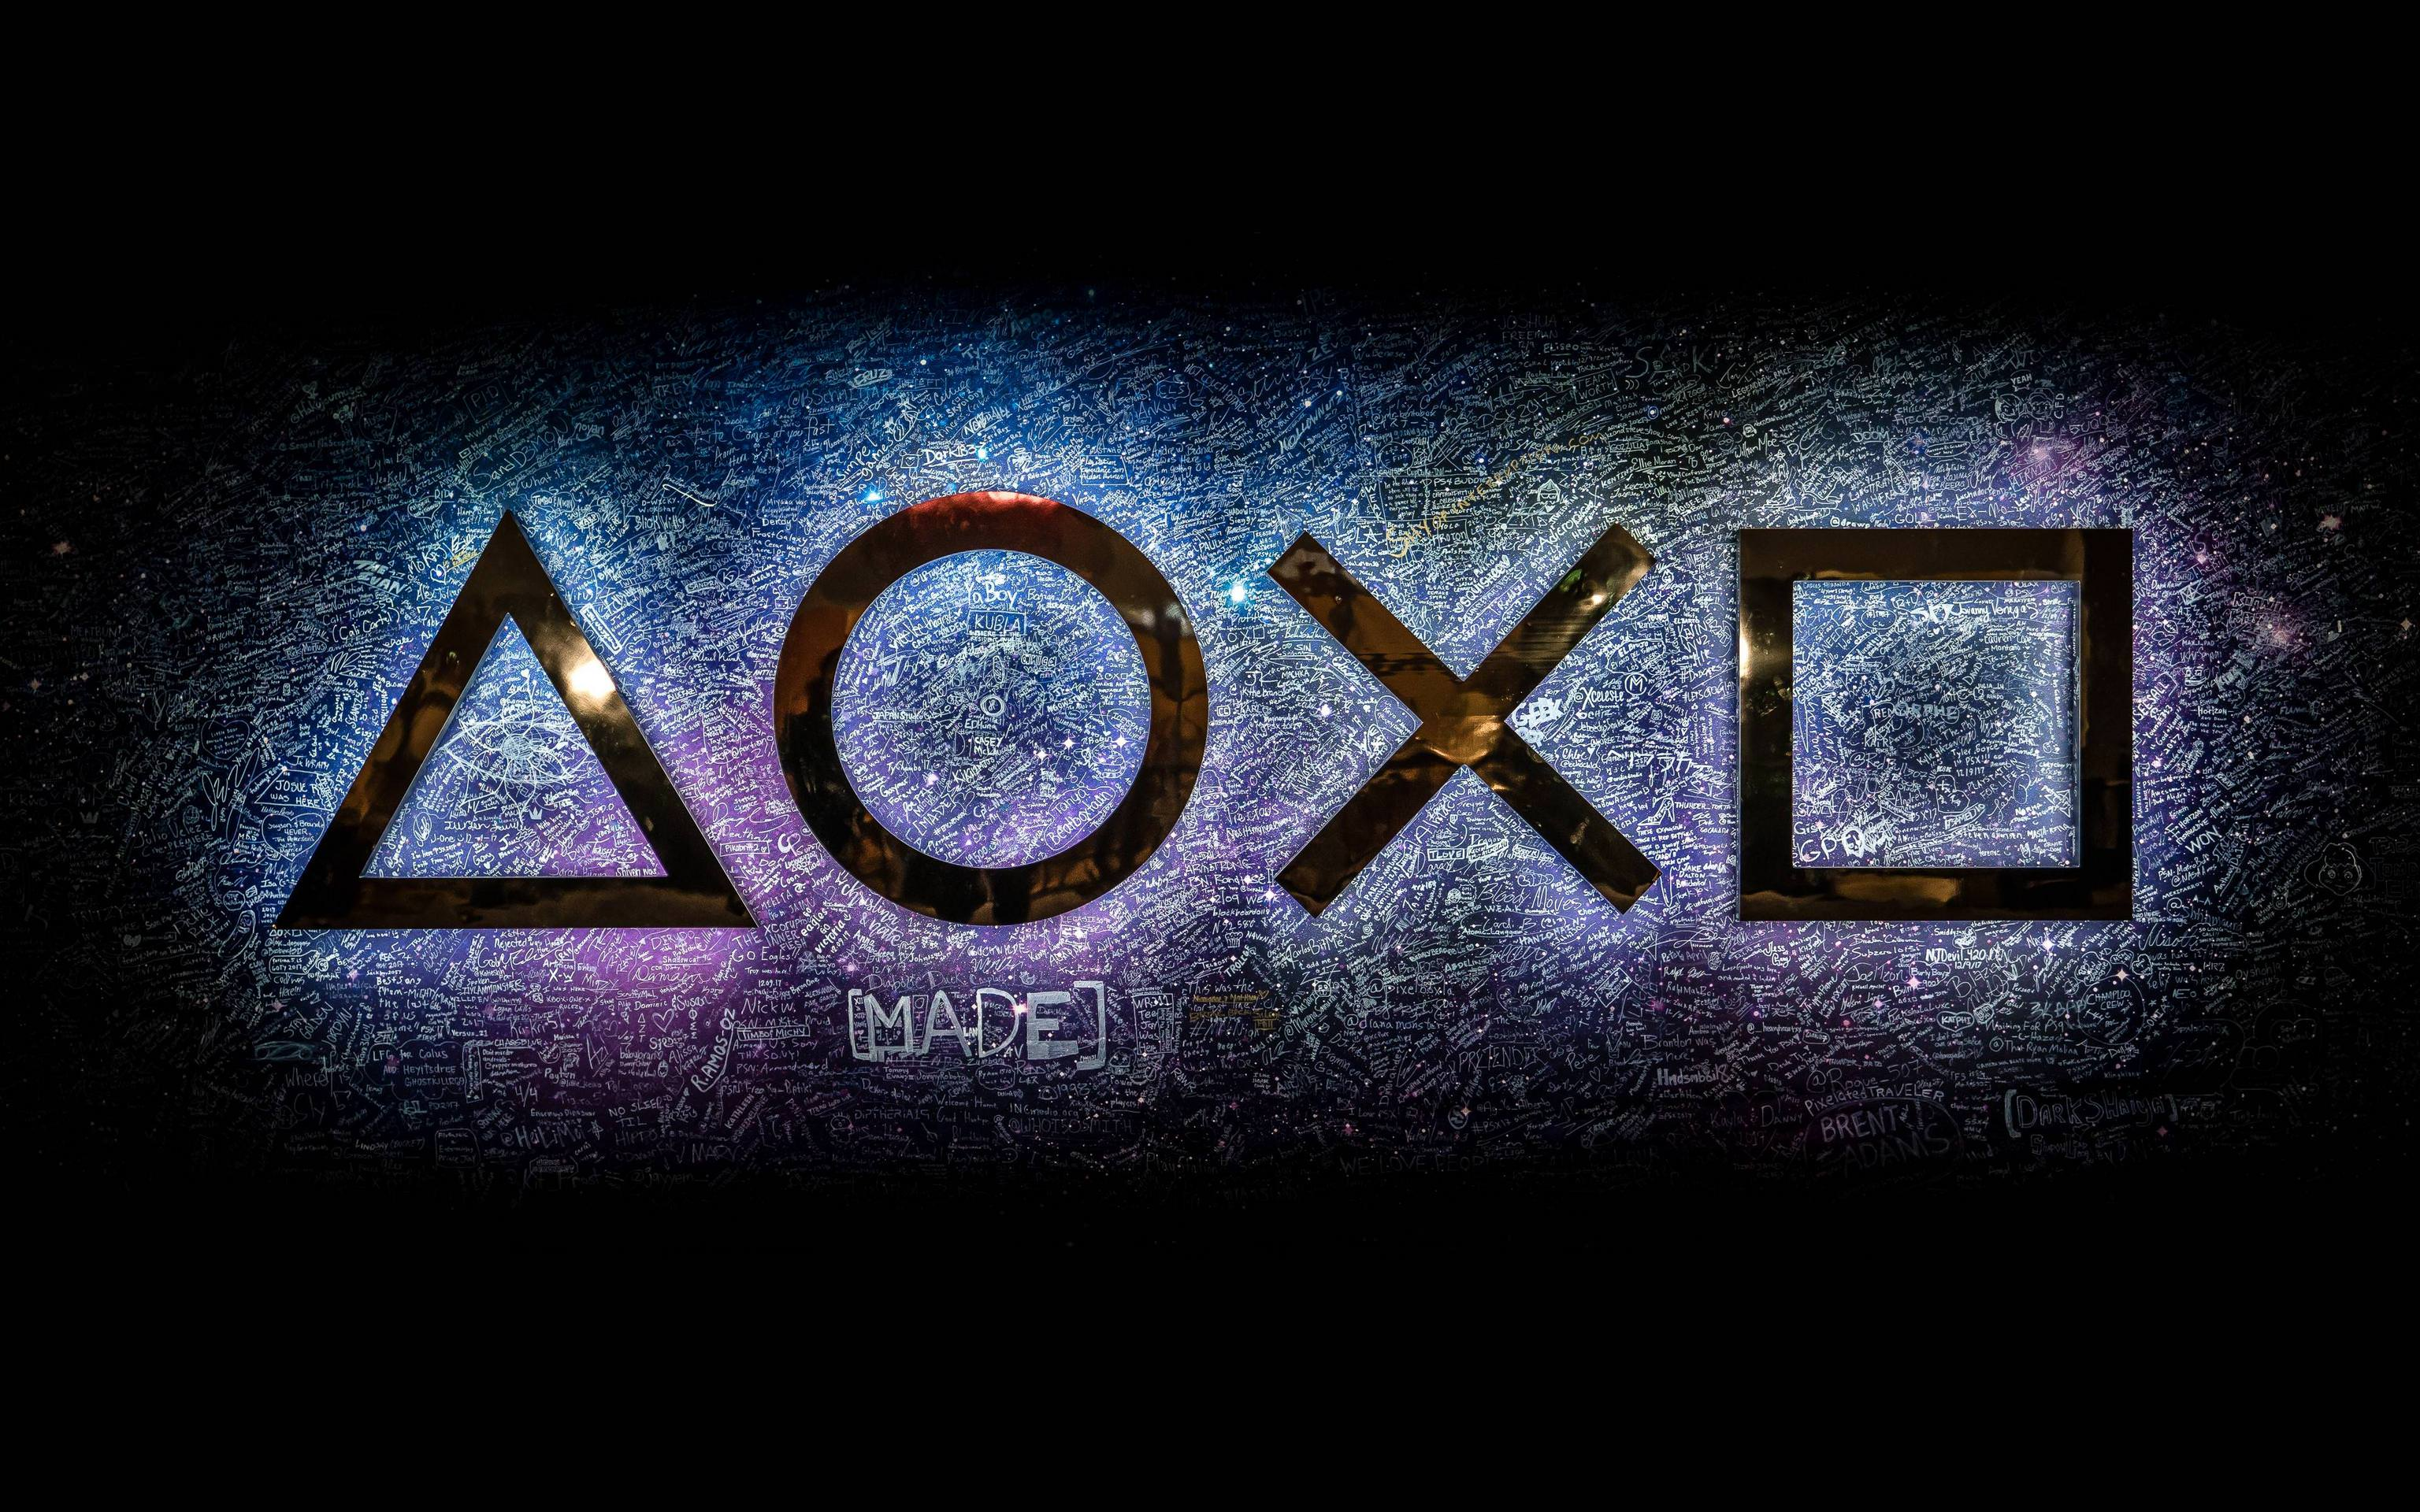 4k Ps4 Wallpapers Top Free 4k Ps4 Backgrounds Wallpaperaccess